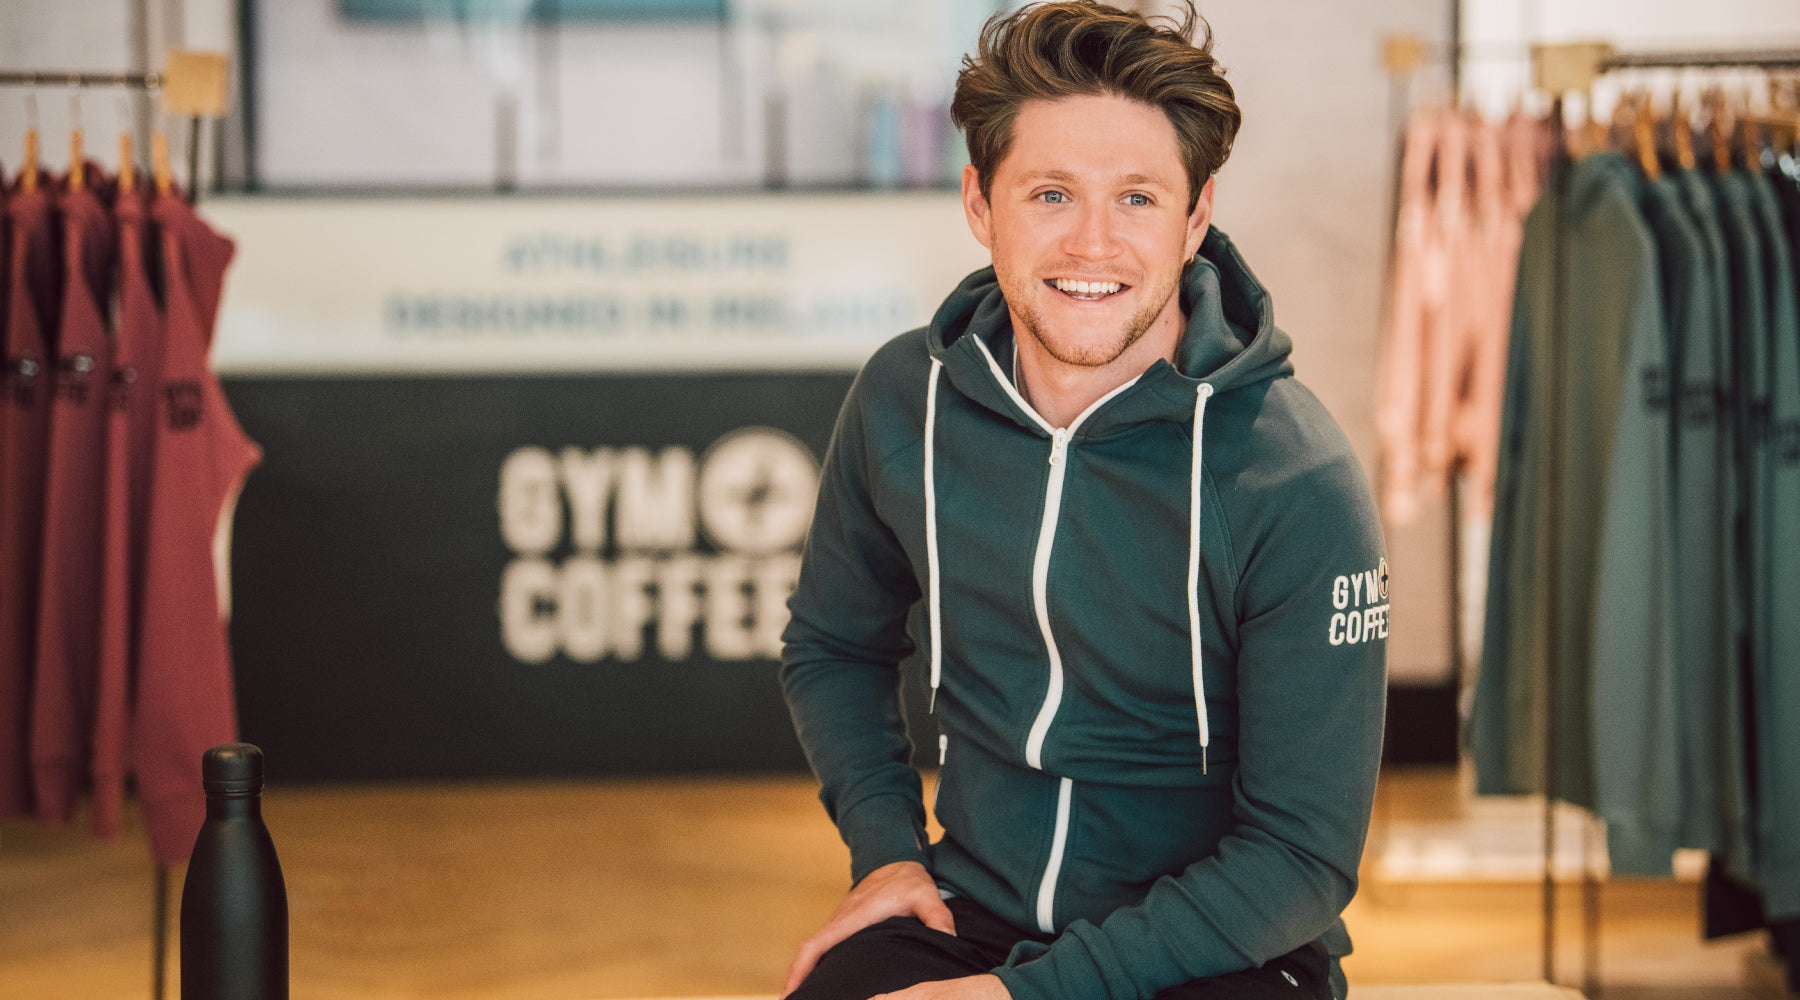 Gym plus coffee big announcement Meet Niall Horan brand advisor and investor